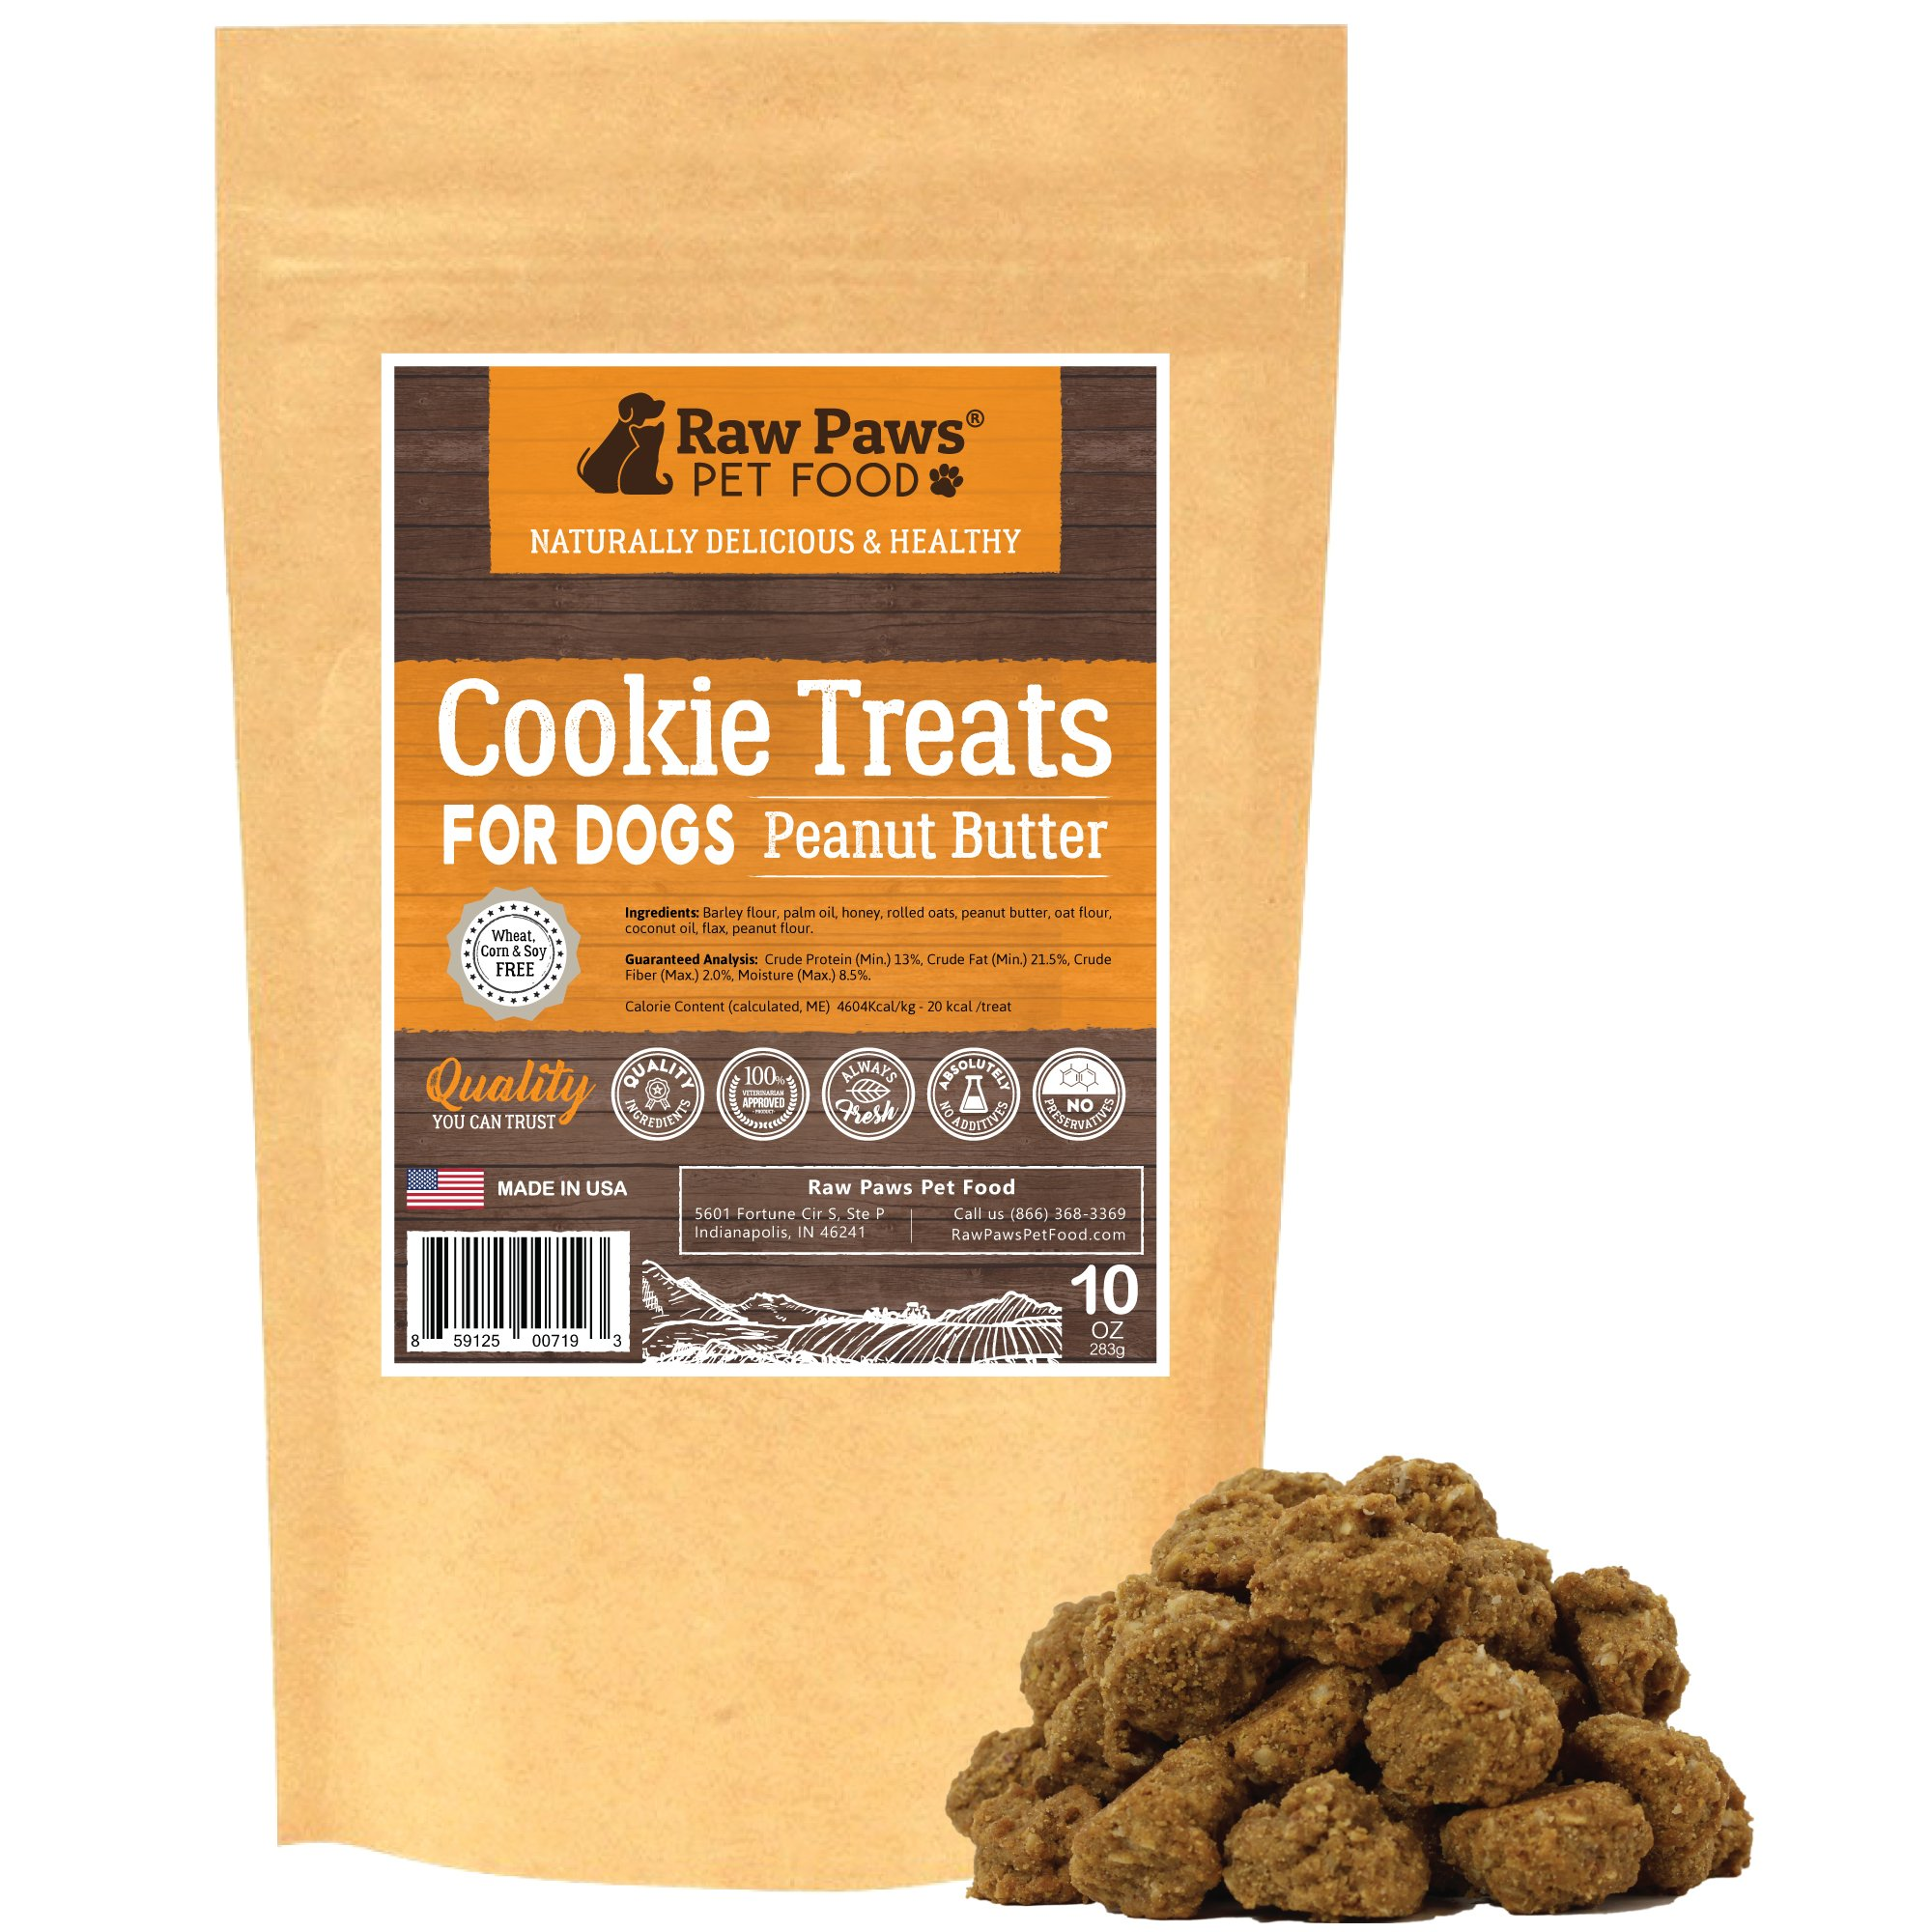 Raw Paws Pet All-Natural Peanut Butter Dog Cookies, 10-ounce - Made in USA Only - Peanut Butter Treats for Dogs - Wheat, Corn, Soy & Preservative Free - Peanut Butter Dog Treats